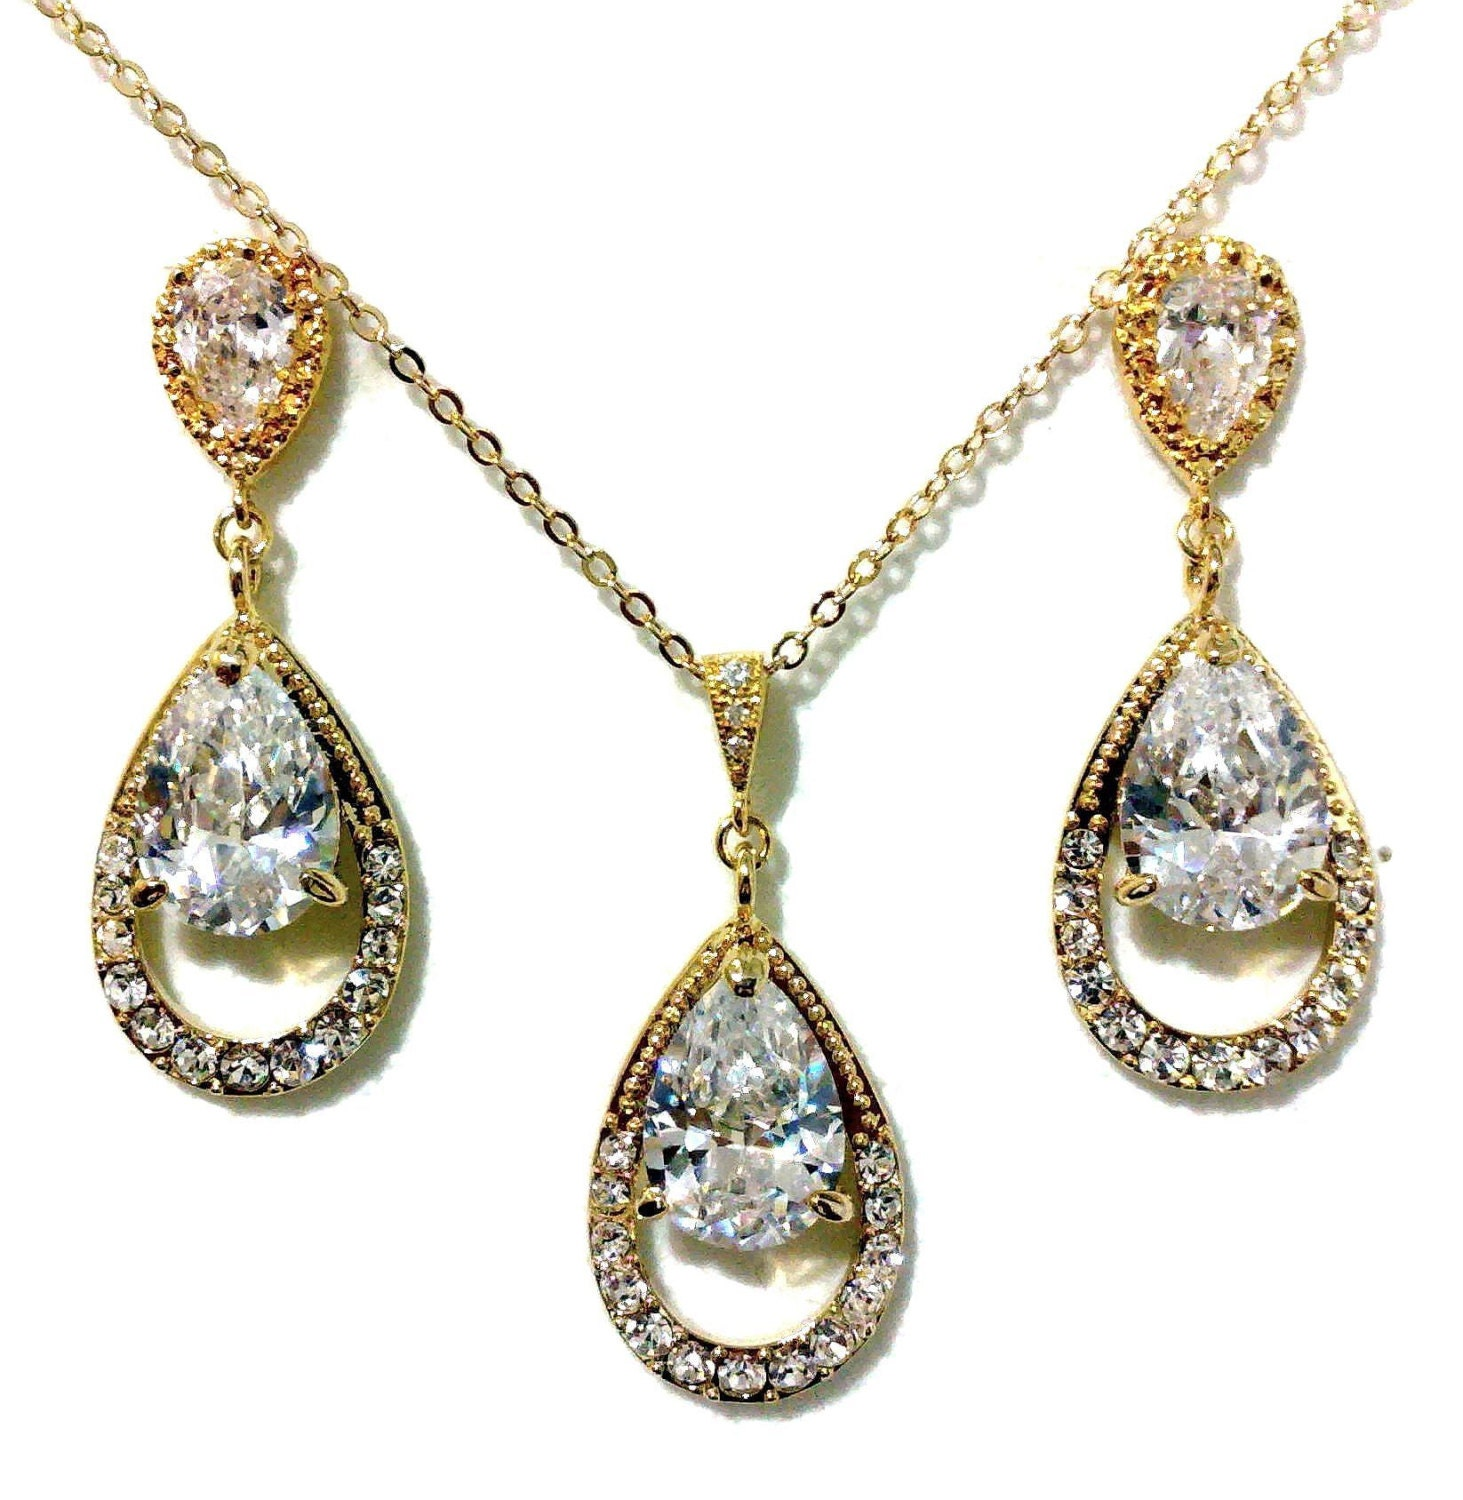 Cubic Zirconia Jewelry Sets : Gold bridal jewelry set cubic zirconia necklace